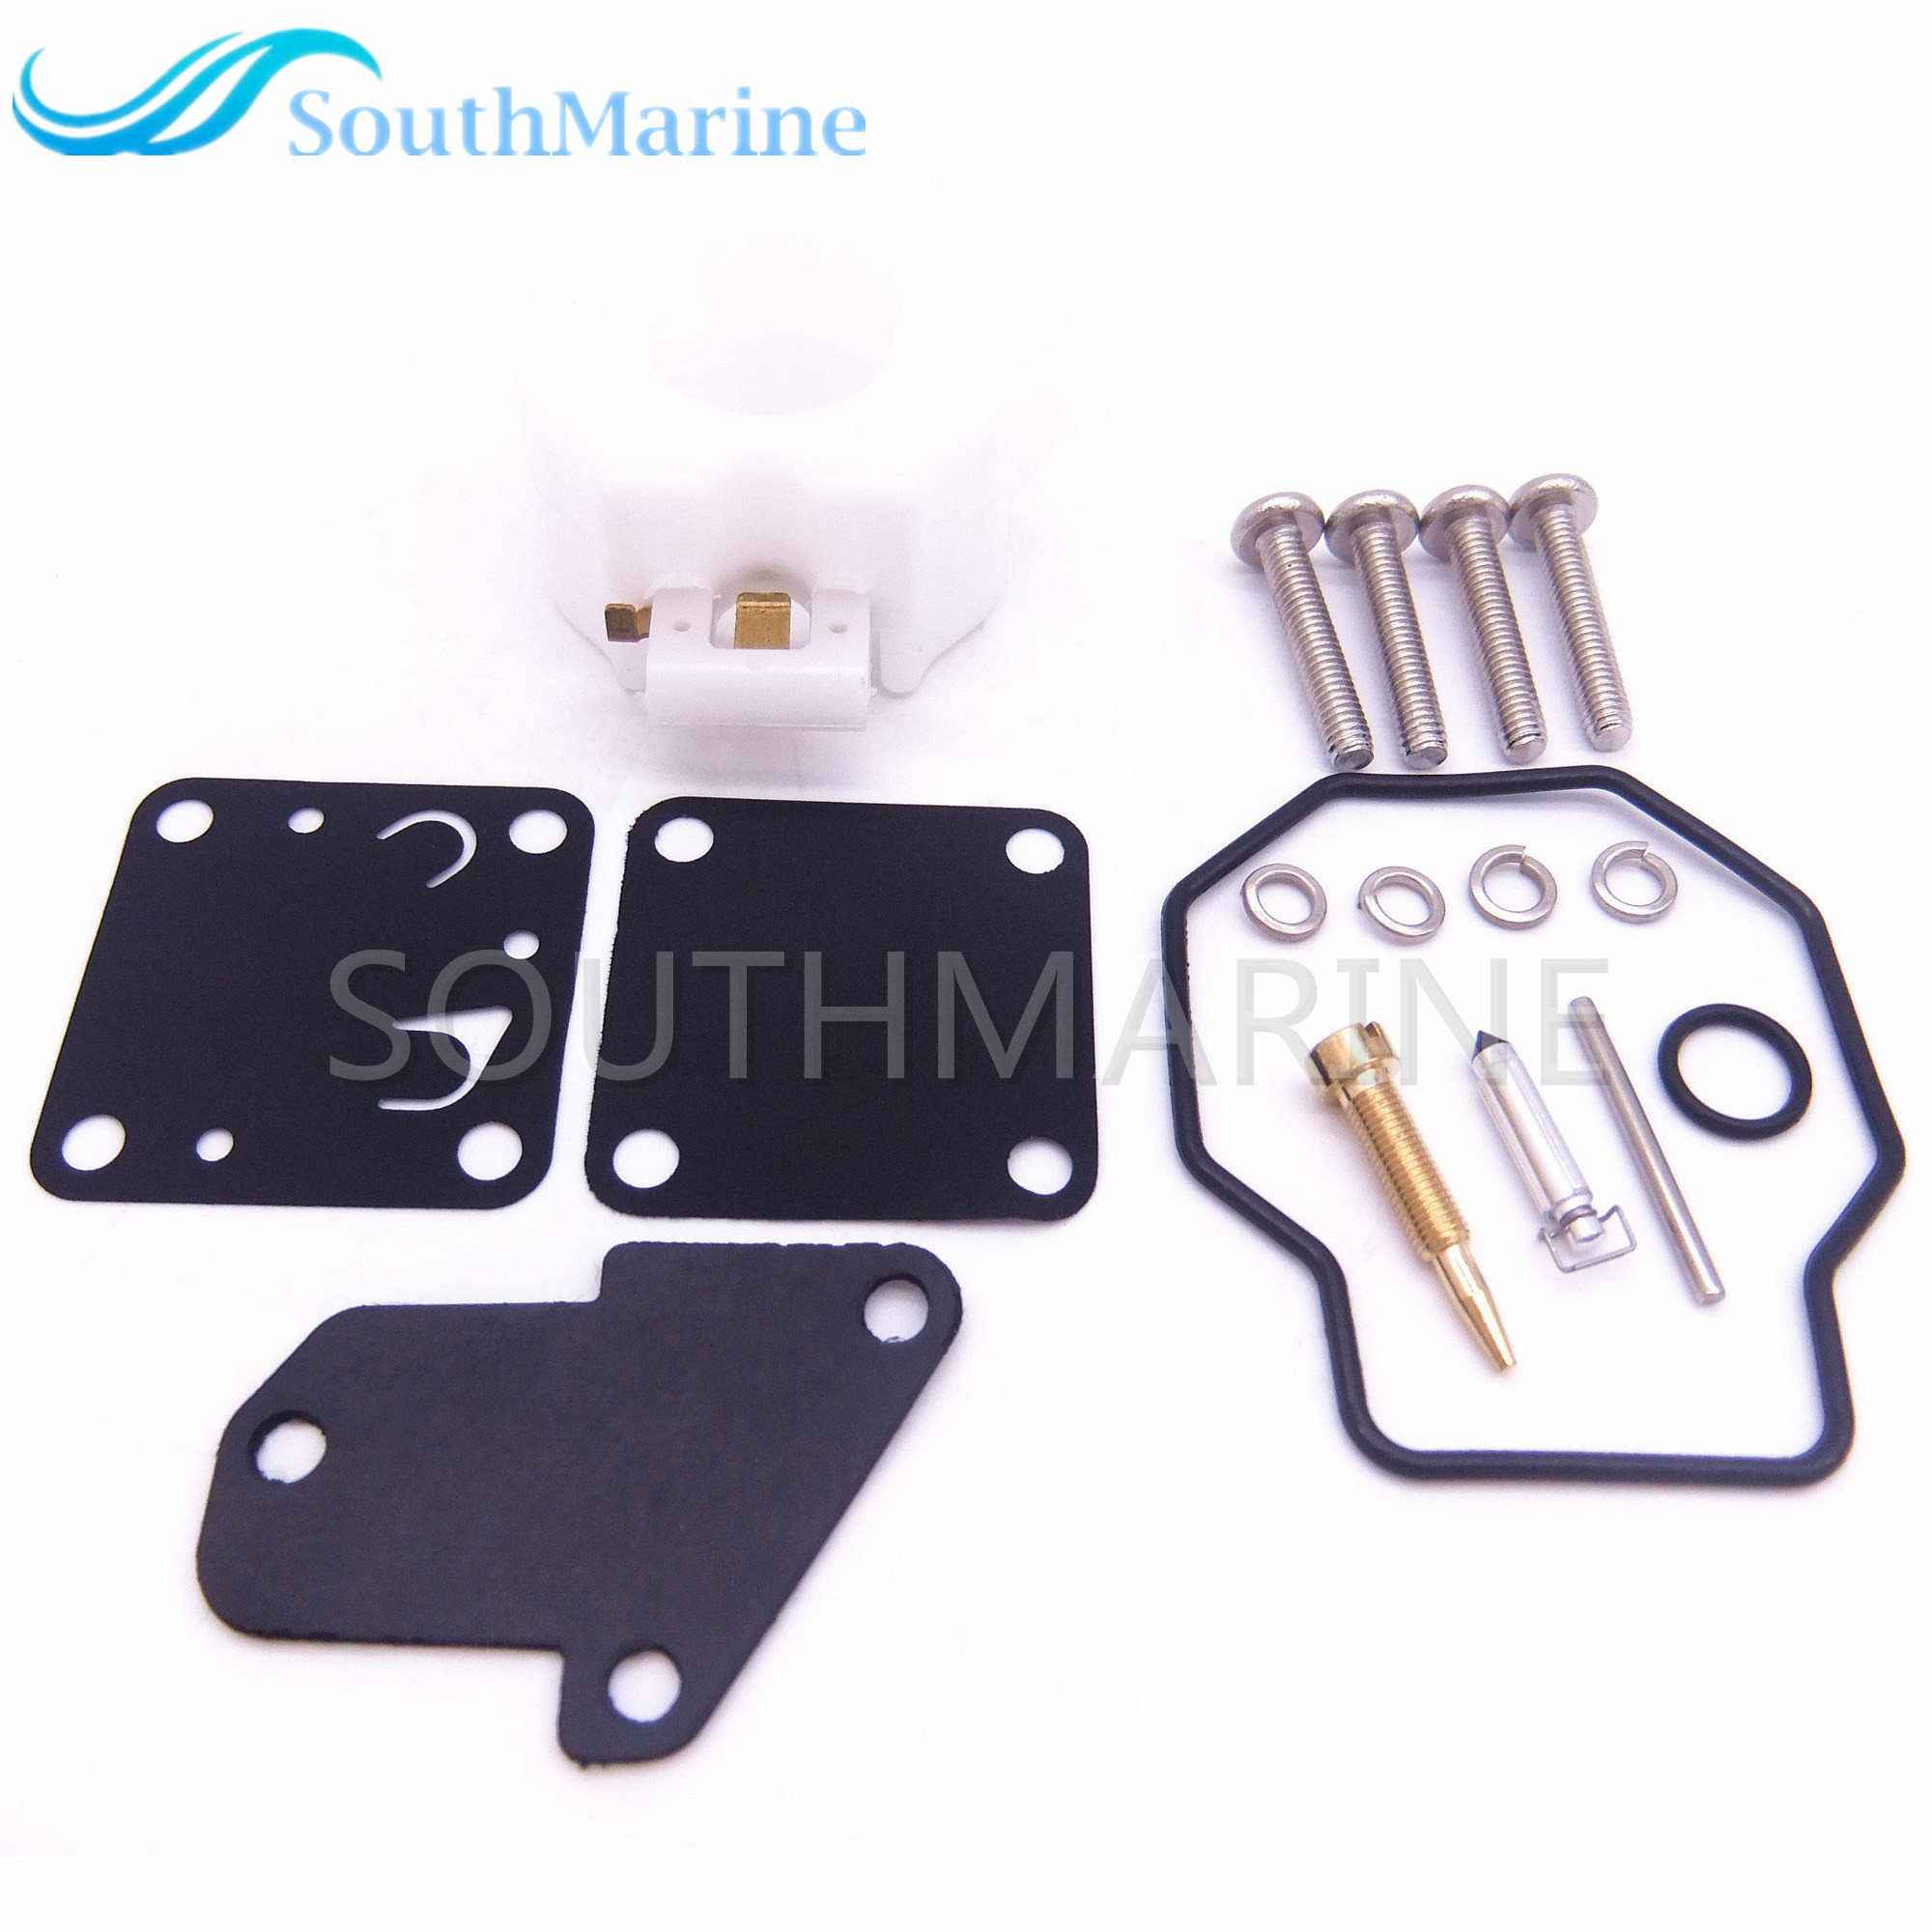 Boat Motor Carburetor Repair Kit 6E3-W0093 6E0-W0093 For Yamaha 4HP 5HP 4M 5M Outboard Engine